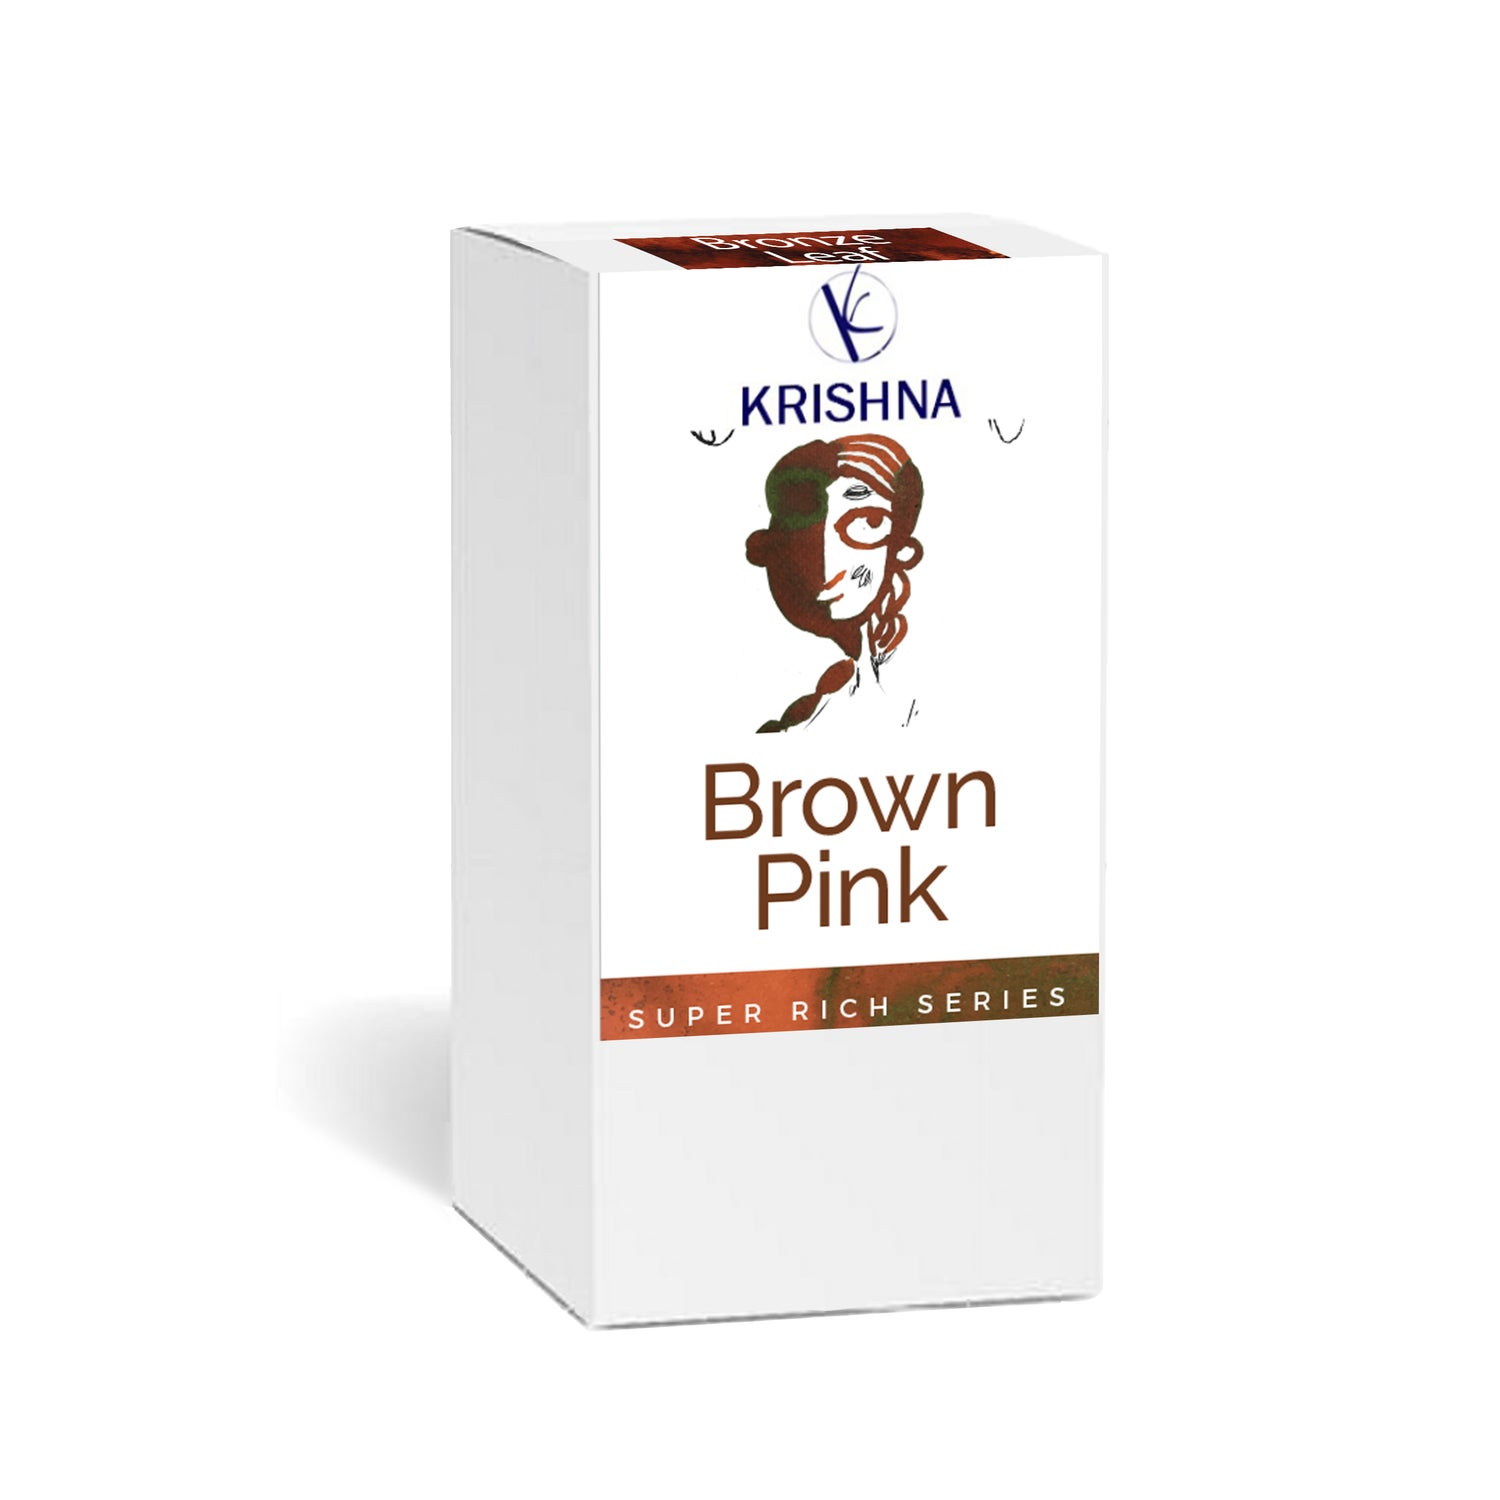 Image of Krishna Inks - Super Rich Series BROWN PINK 20ml